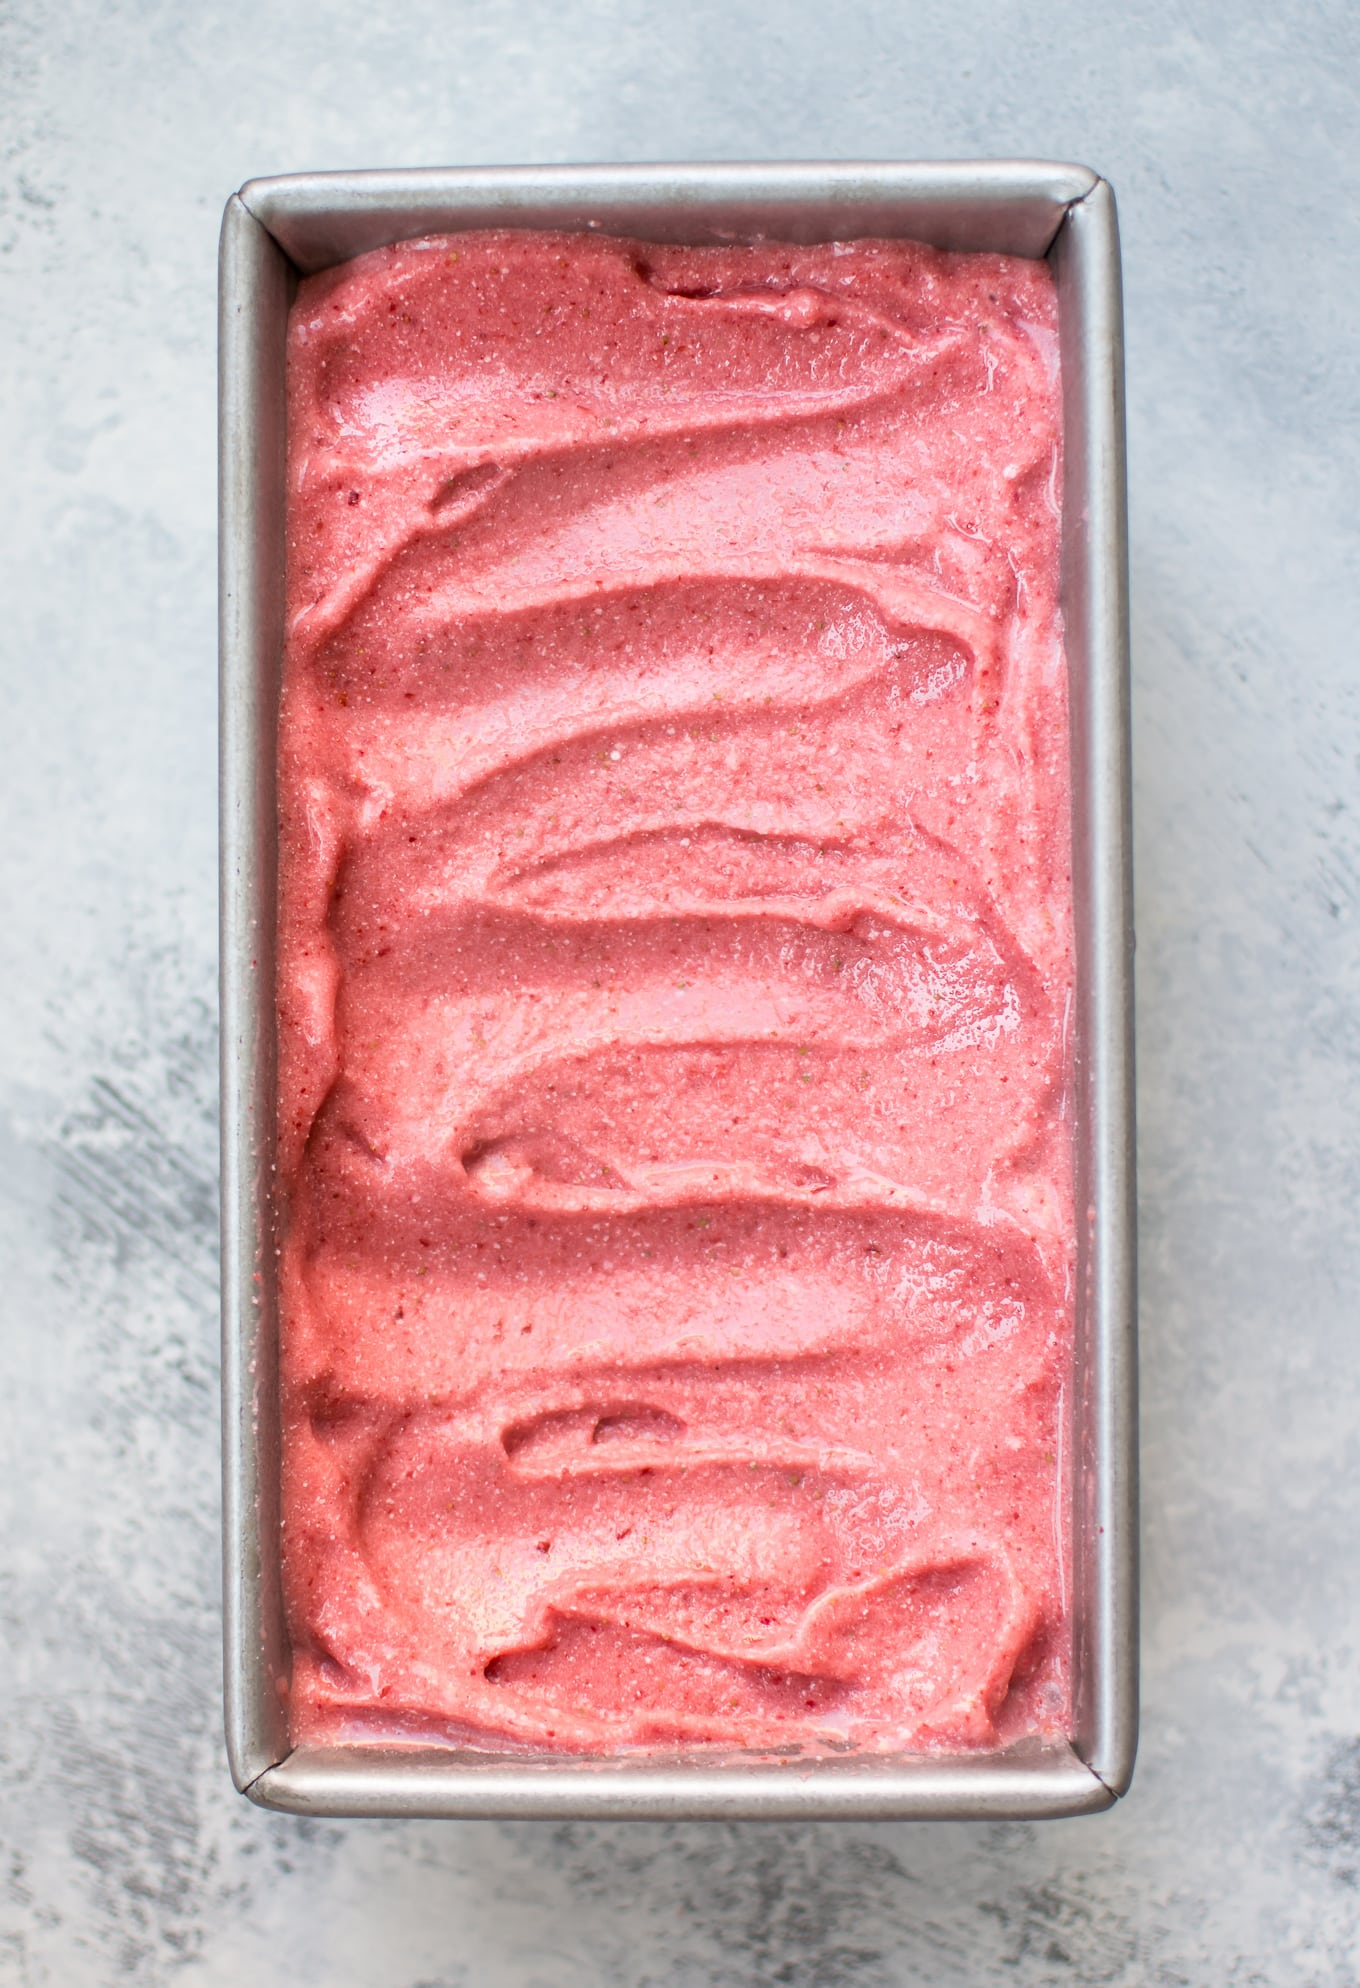 This 2-ingredient vegan strawberry ice cream is made with frozen strawberries, coconut milk, and your food processor in less than 10 minutes!